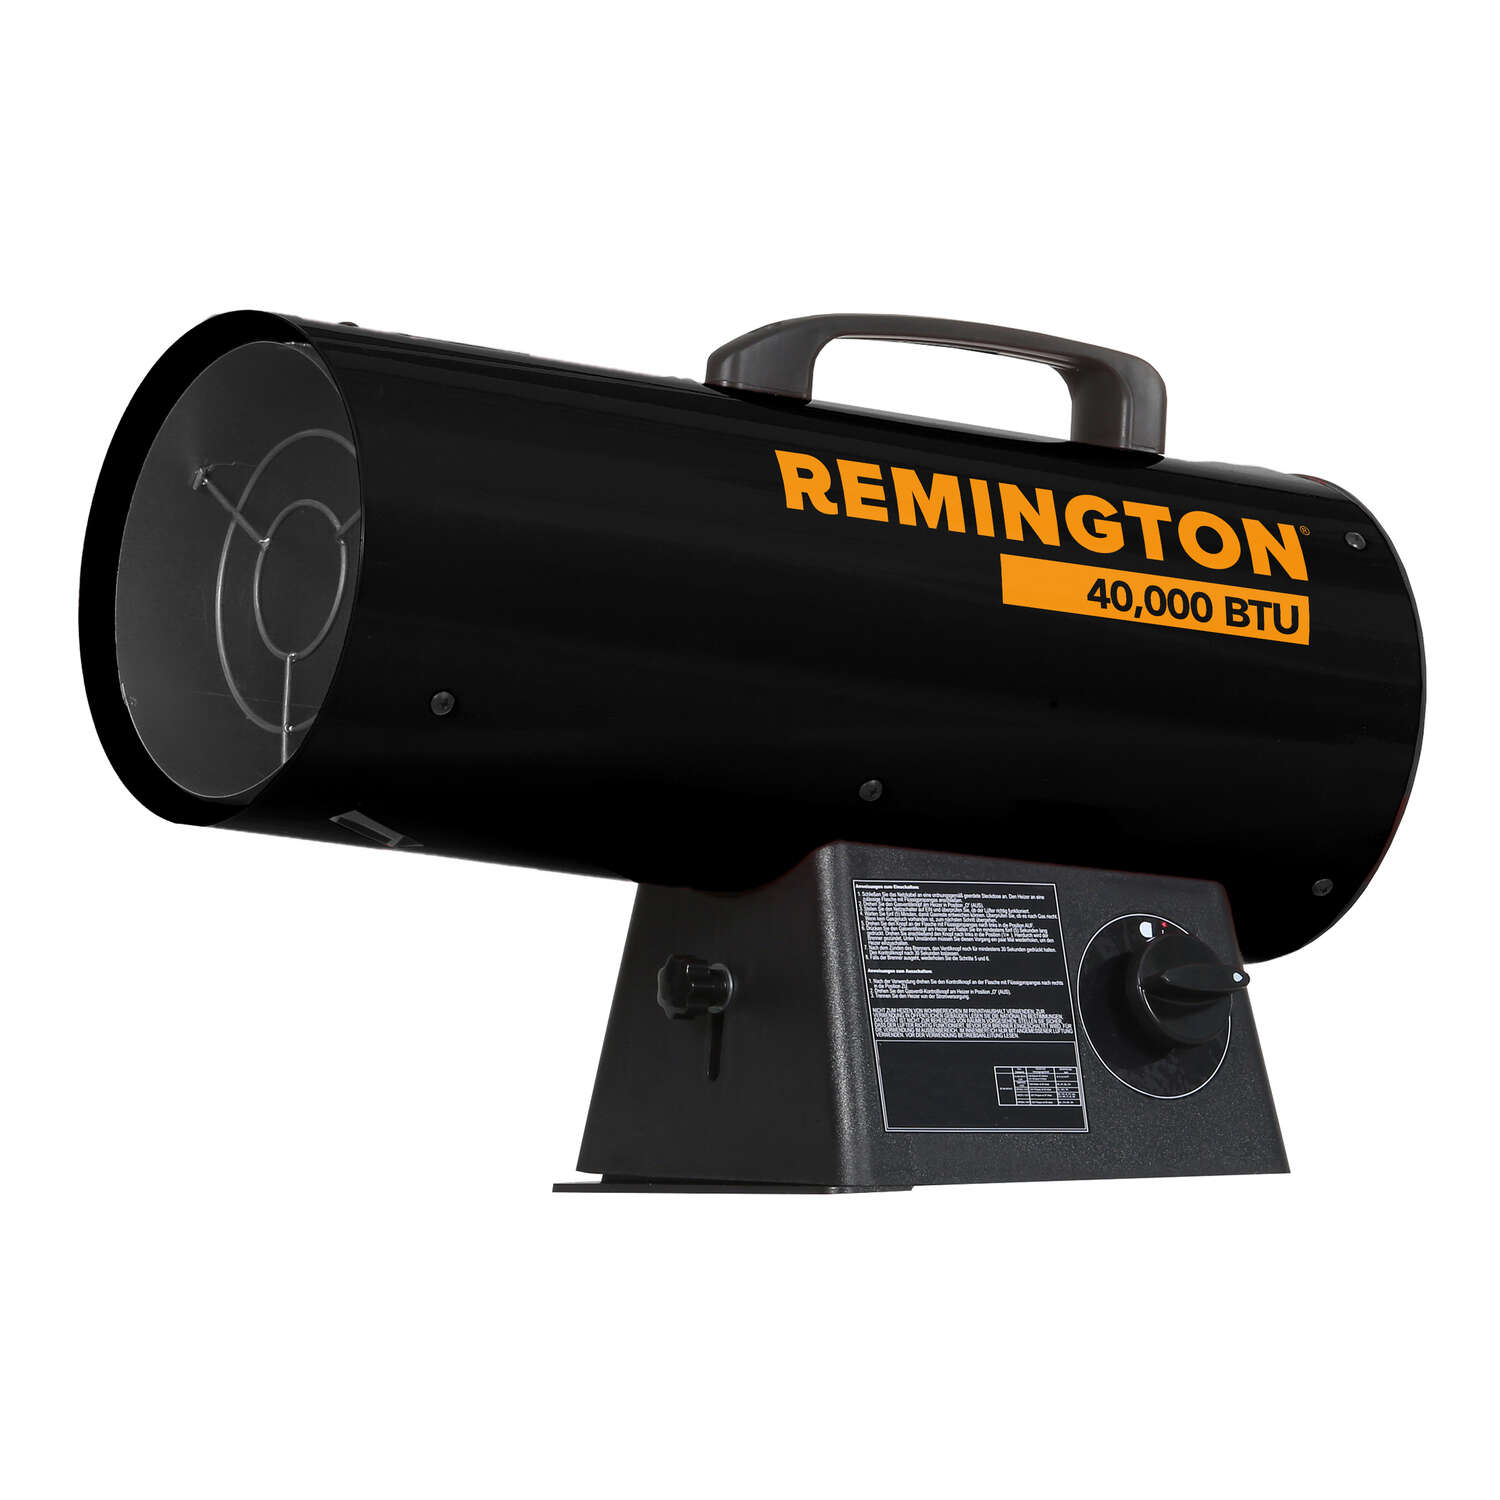 Remington  1,000 sq. ft. Propane  Fan Forced  Heater  40,000 BTU